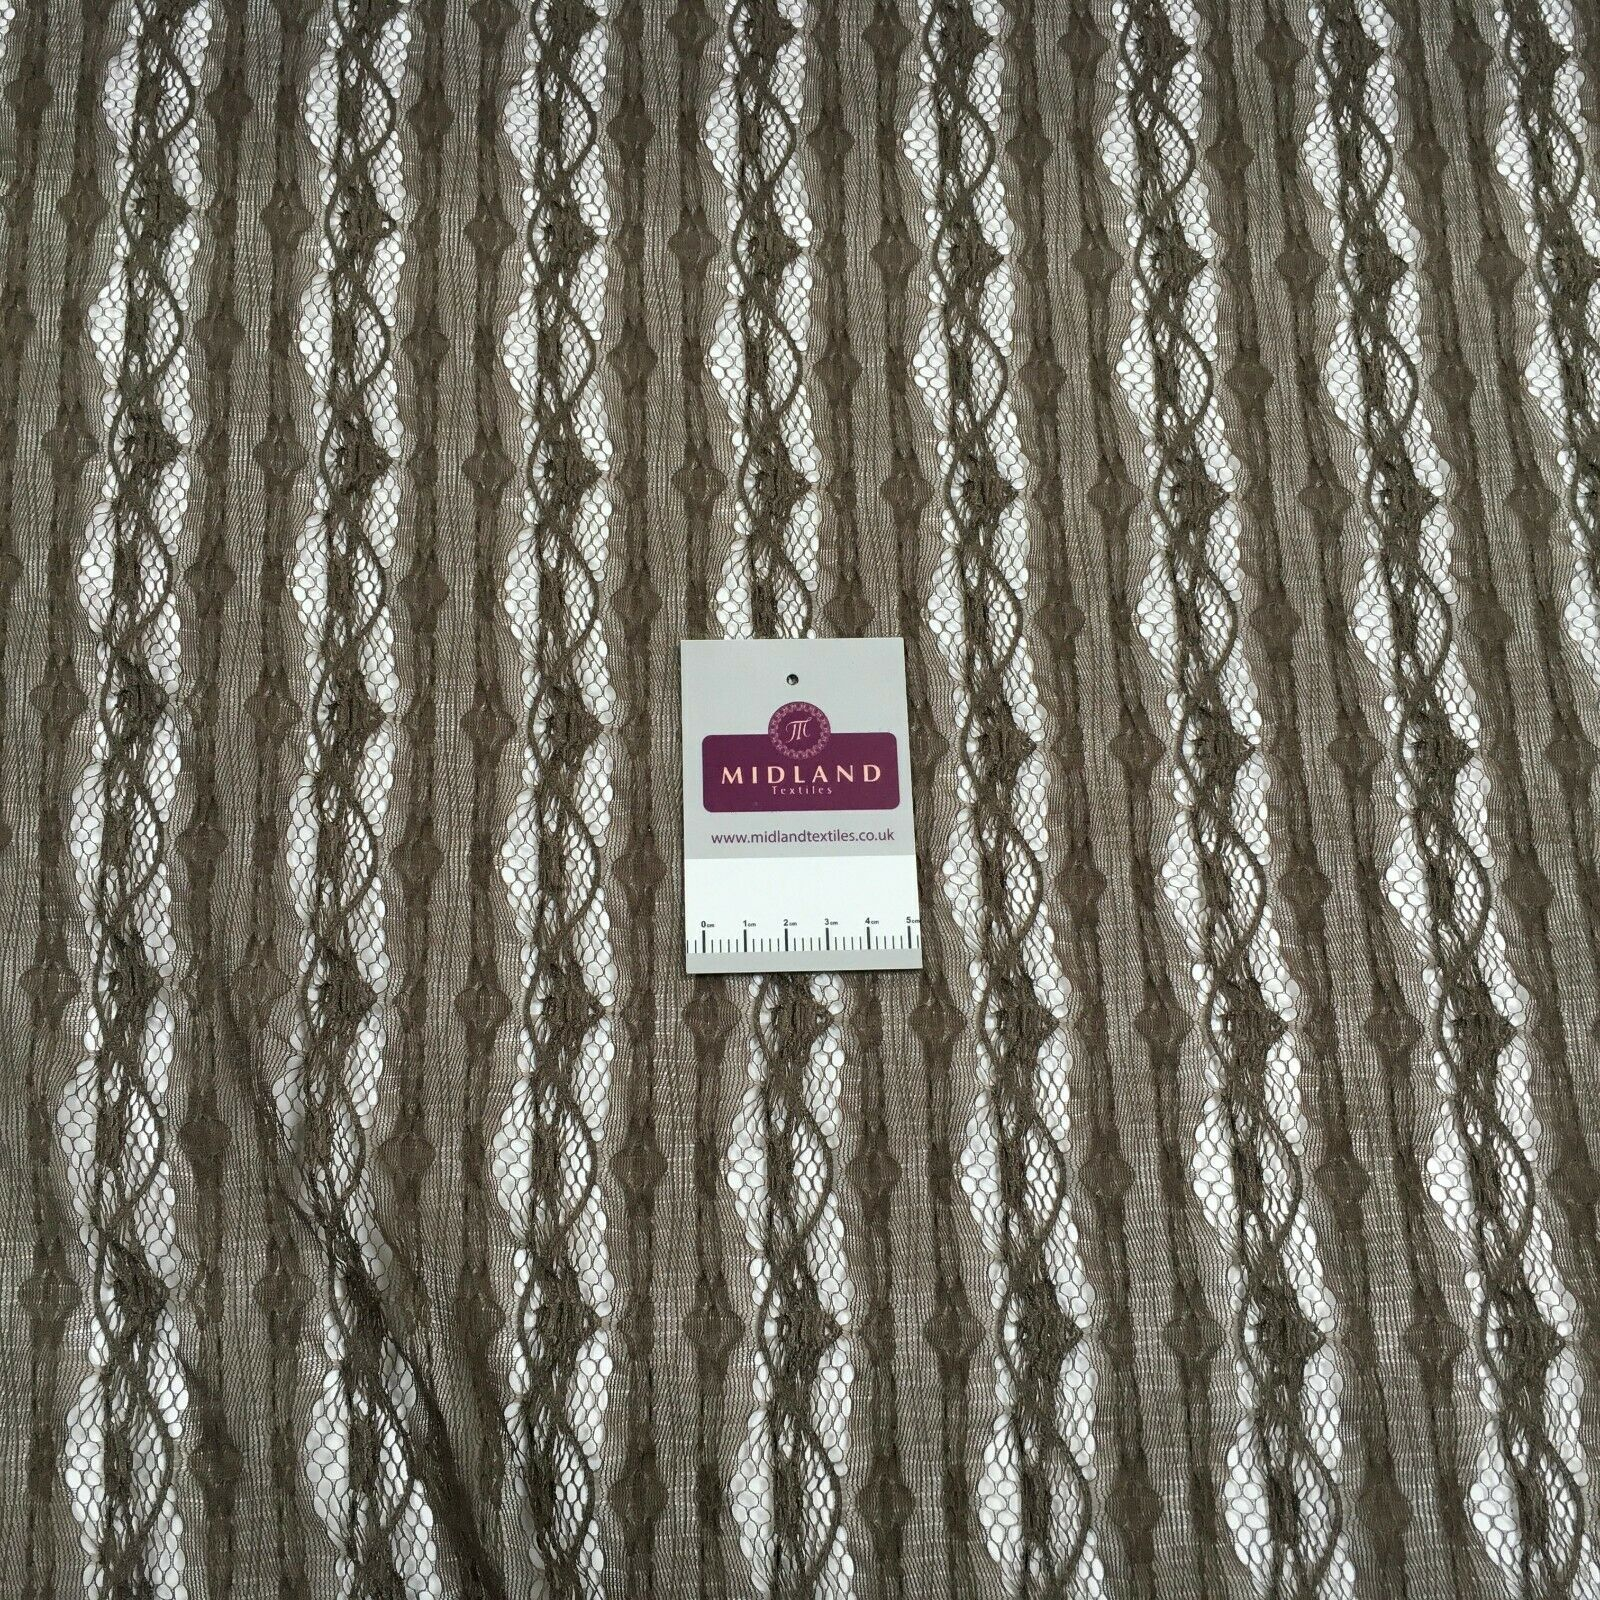 Medium brown geometric lace dress Fabric M186-62 Mtex